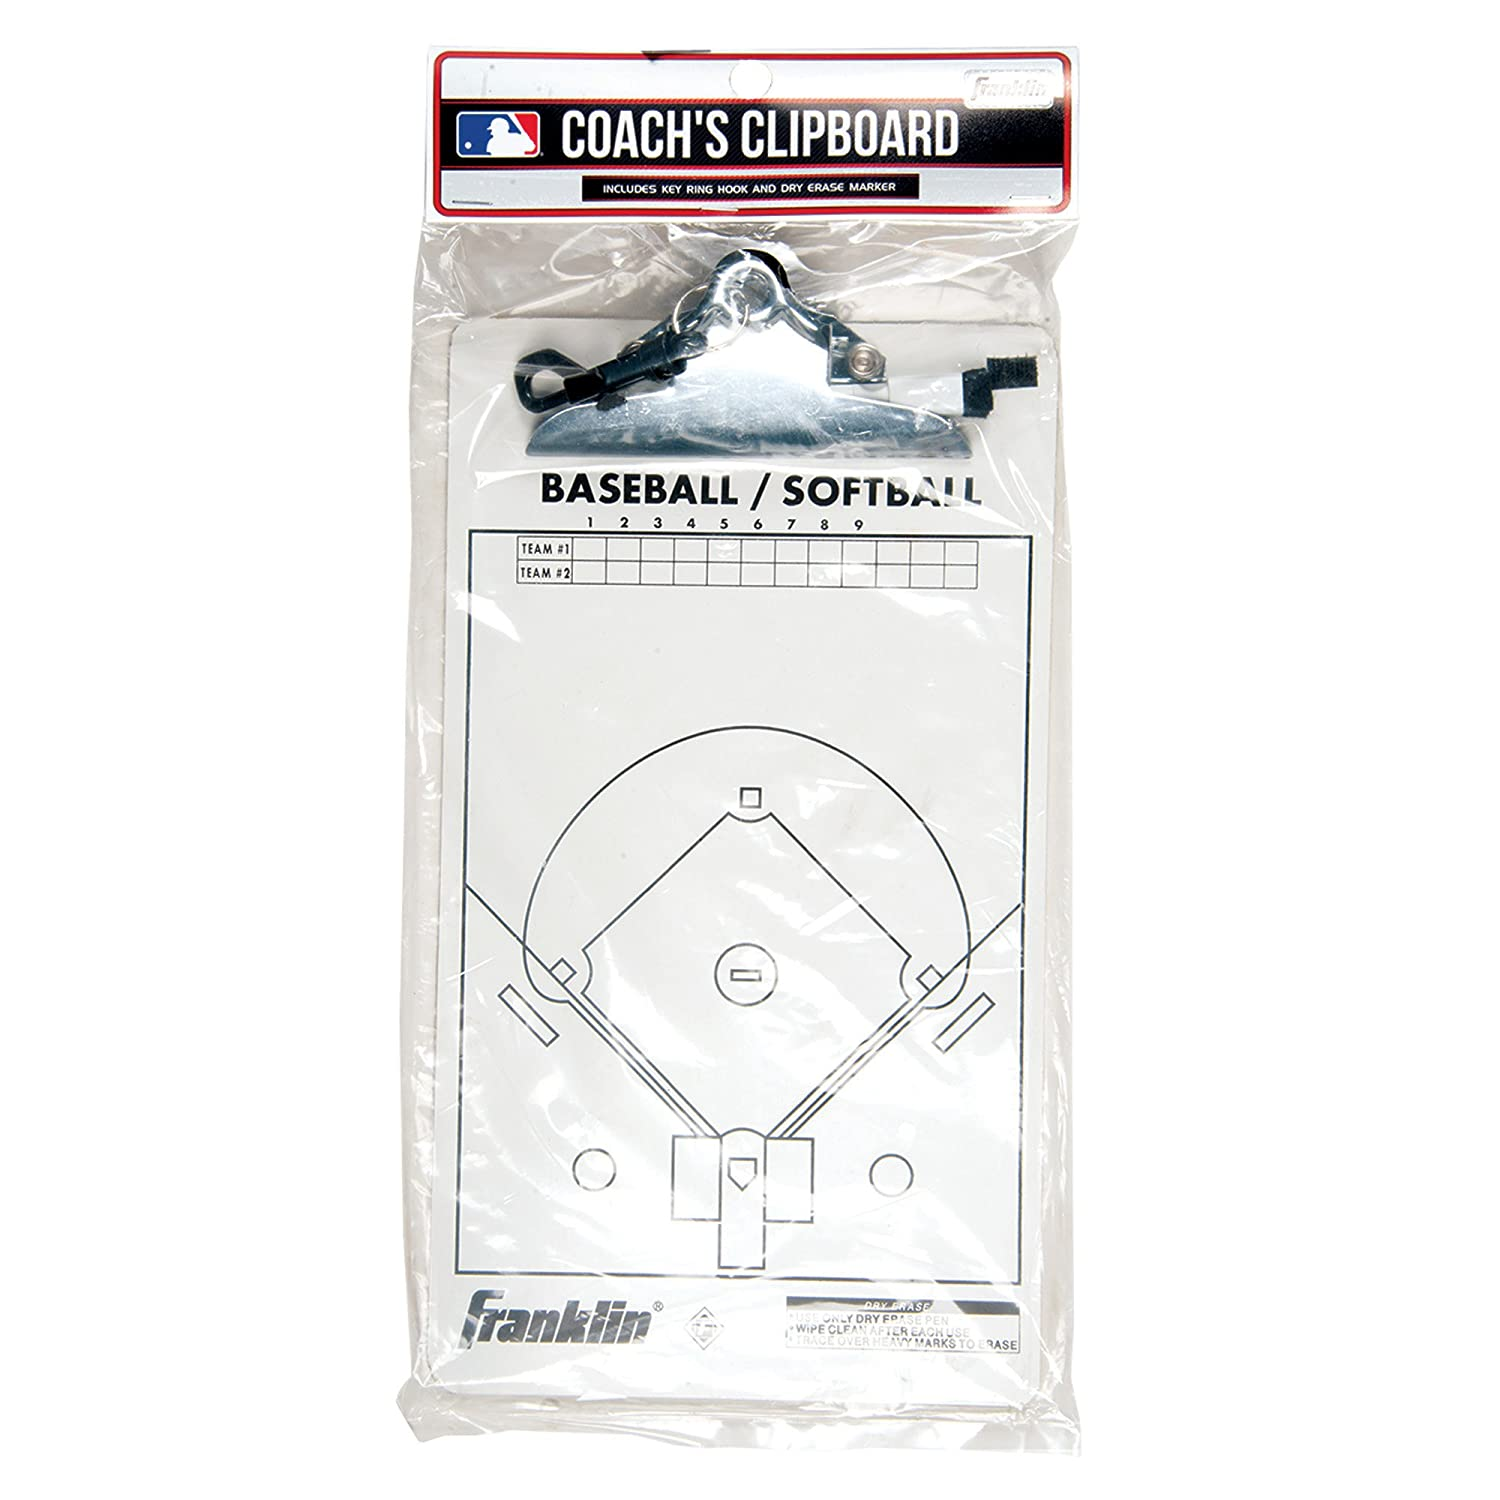 Franklin Sports MLB Coaches Clipboard 1567